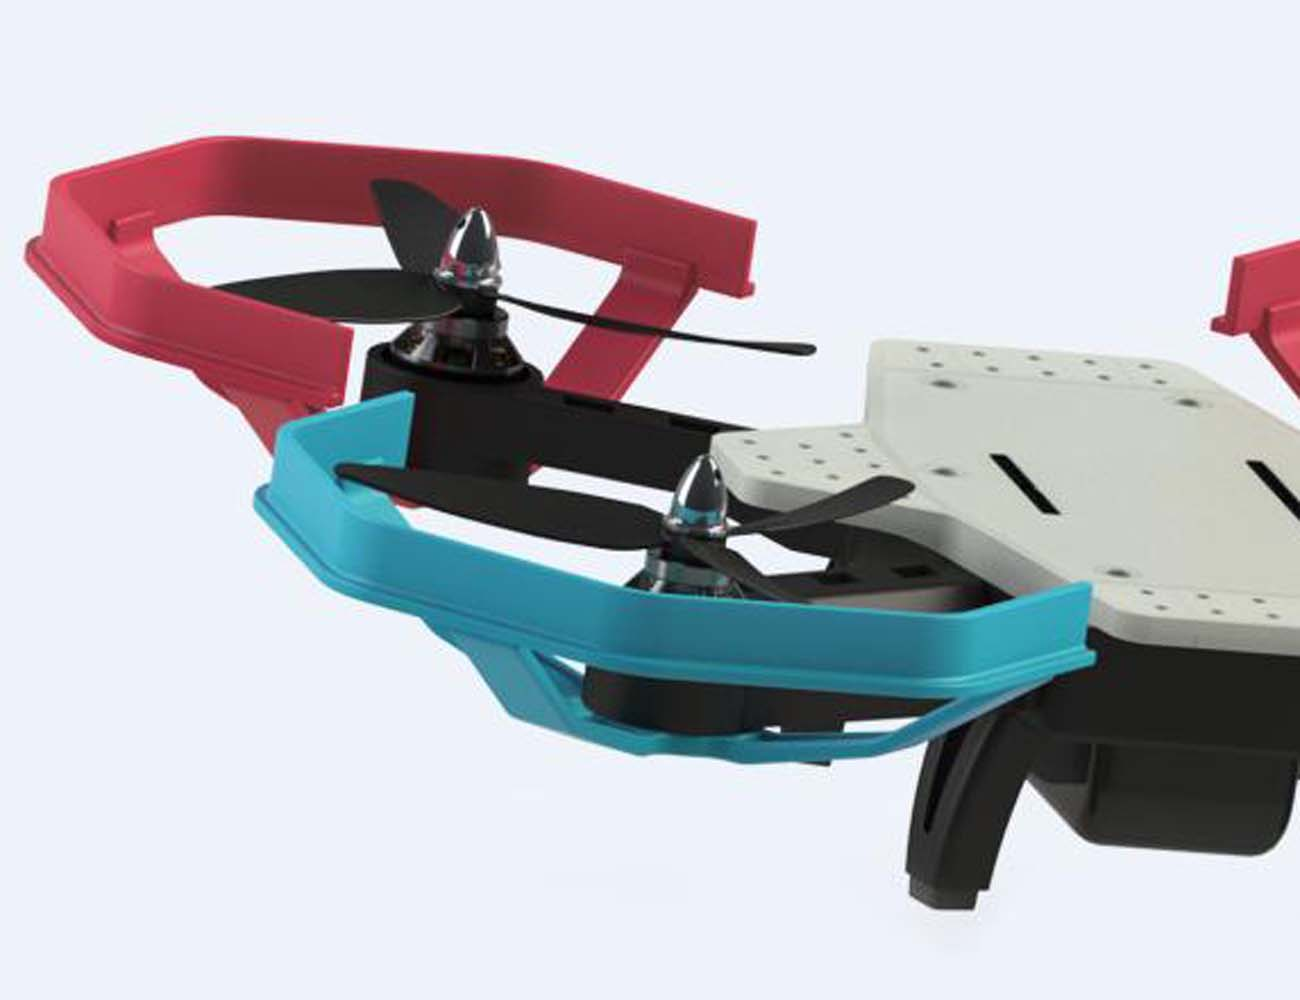 Eedu An Easy Drone Kit That Teaches You Coding And Robotics